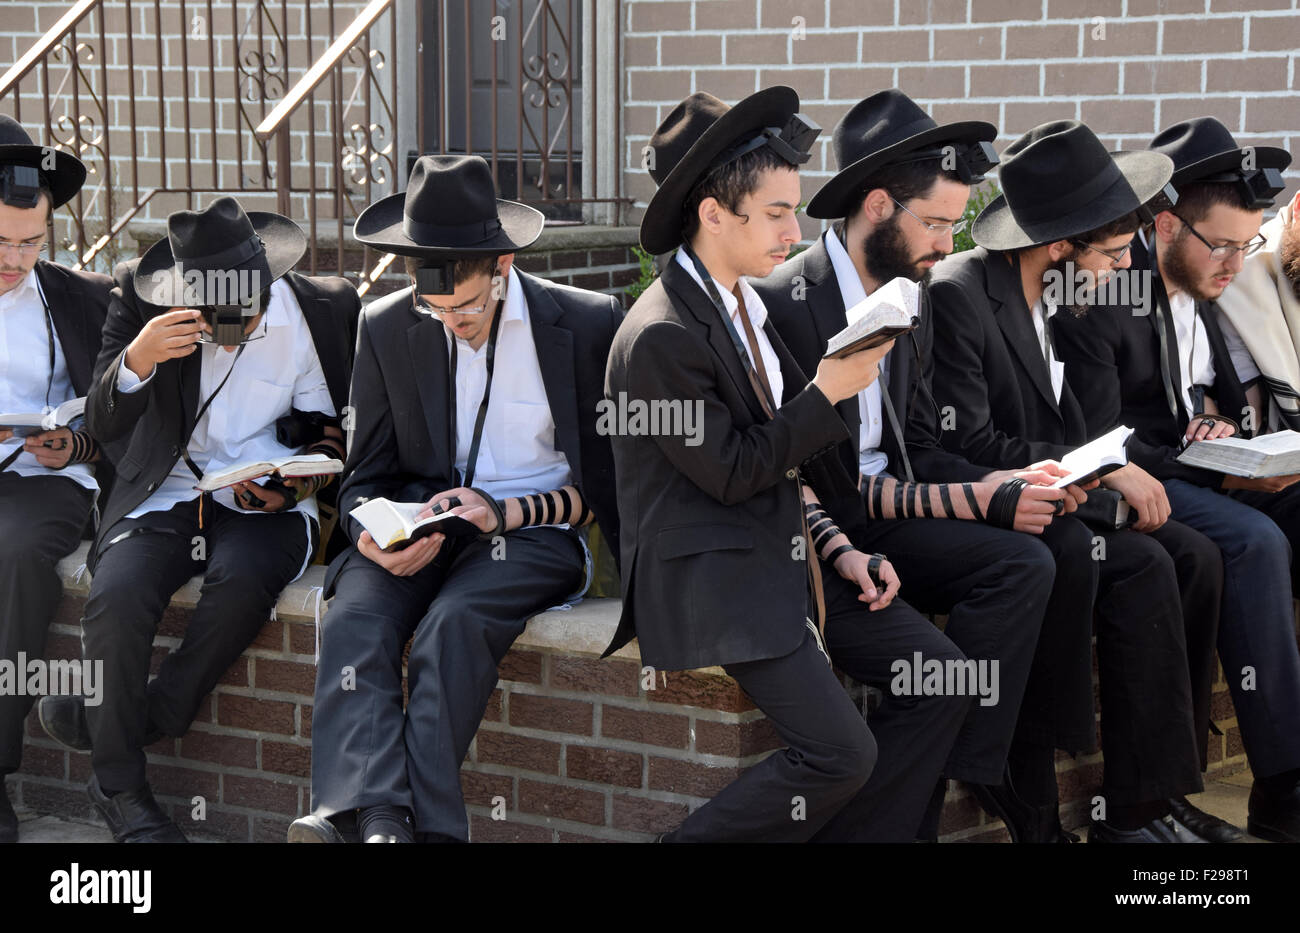 On the day before Jewish New Years religious  boys pray outdoors at the Lubavitcher Rebbe's gravesite in Queens, - Stock Image